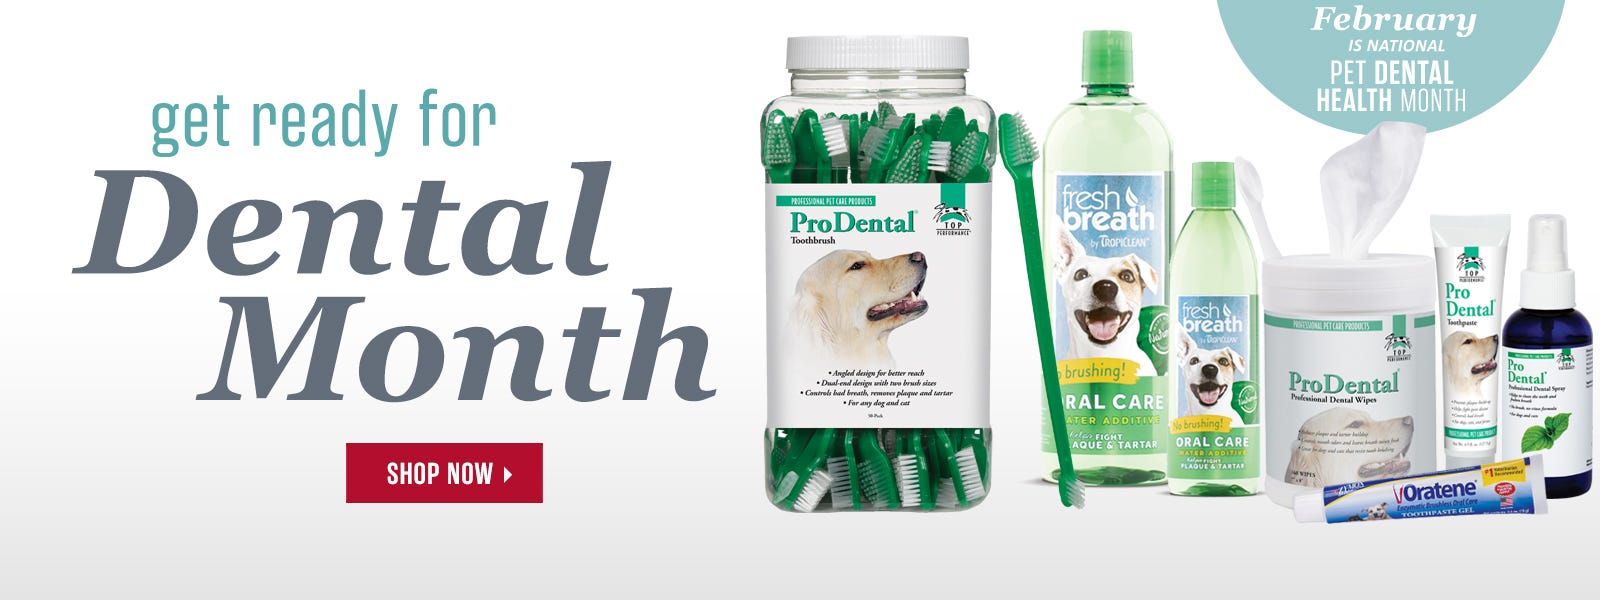 Get ready for Pet Dental Month!